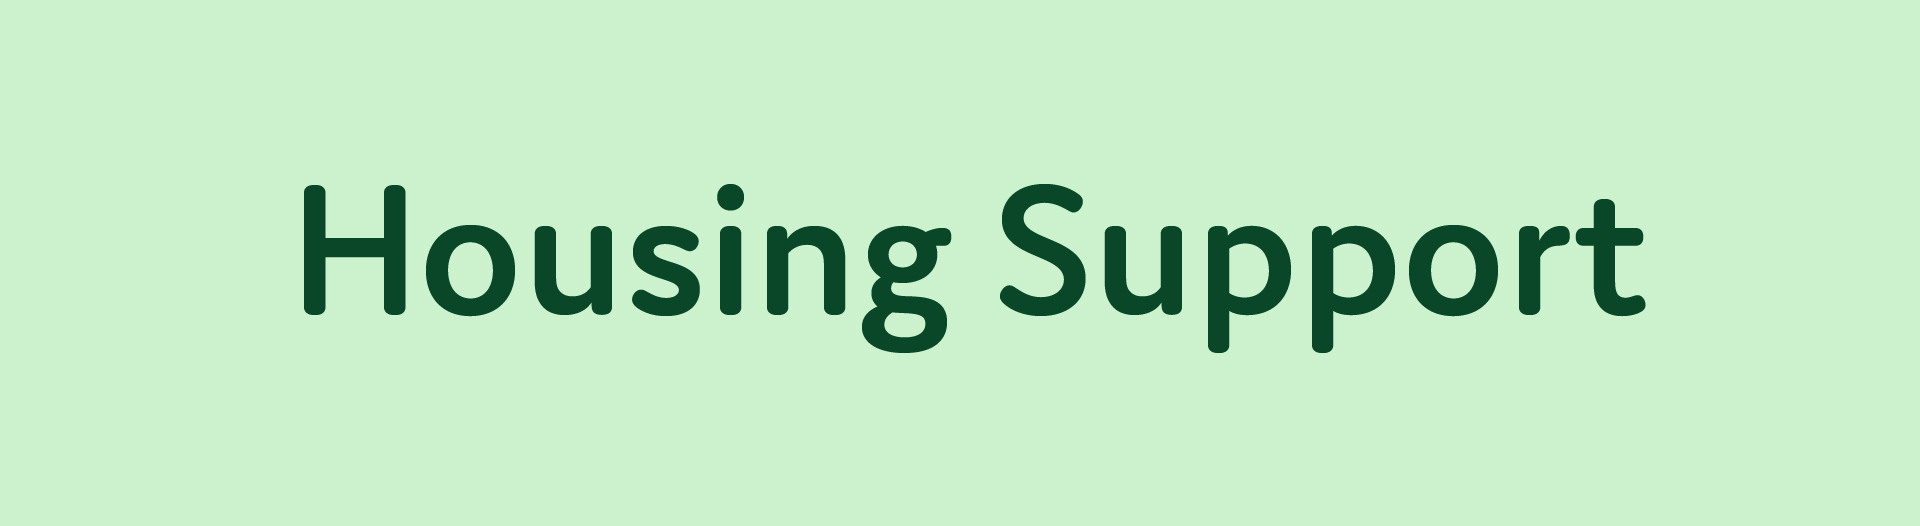 Housing Support-01